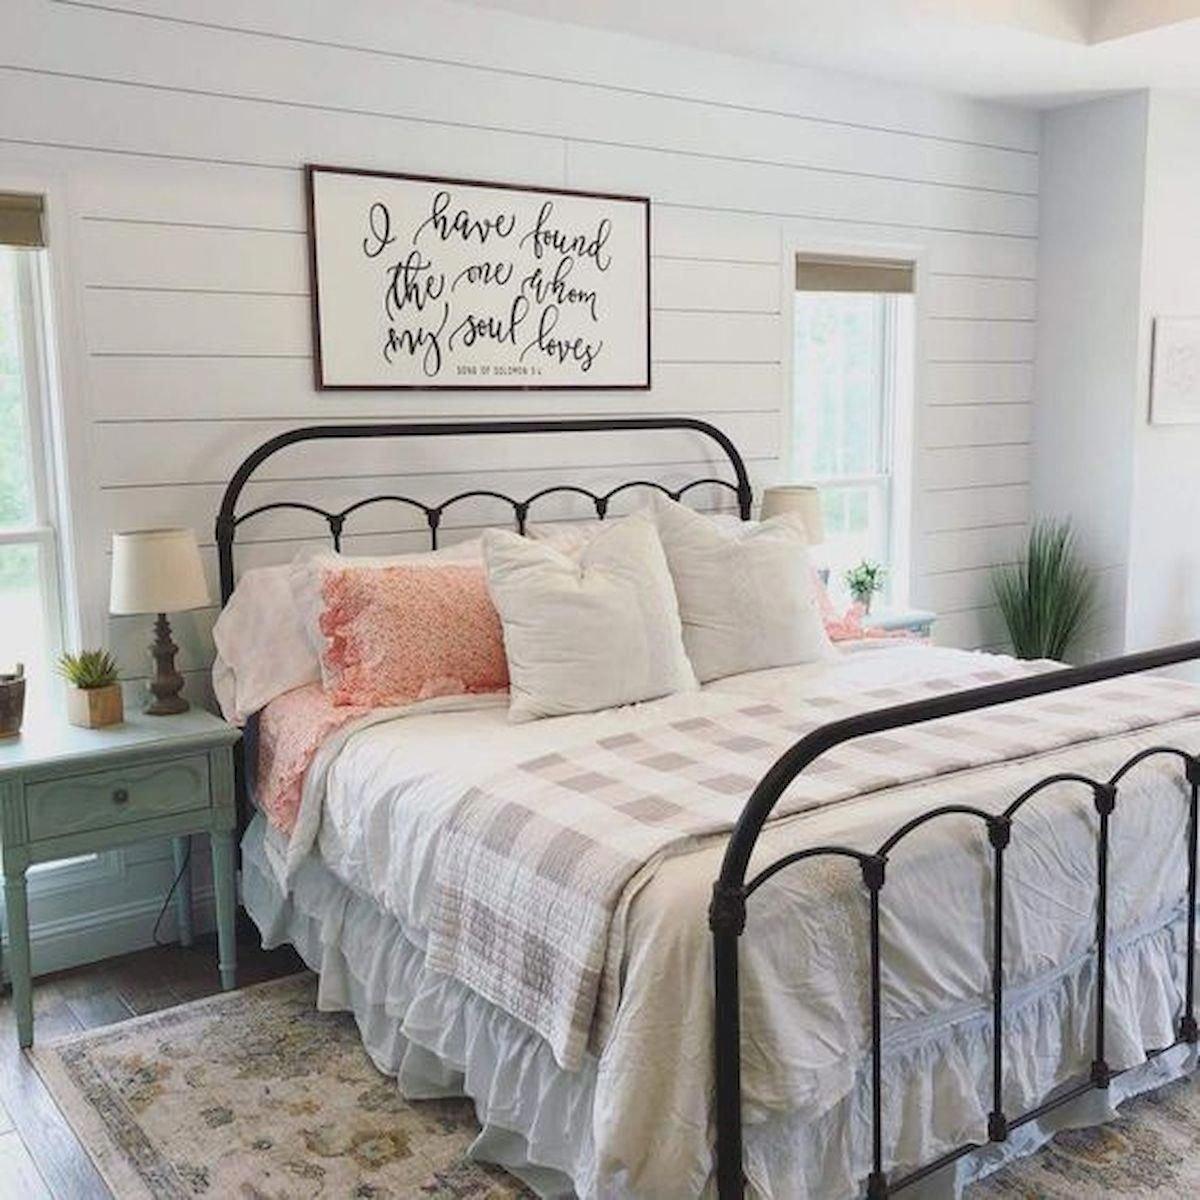 Best Refreshing Bedroom Decorating Ideas 9258943489 Do It With Pictures